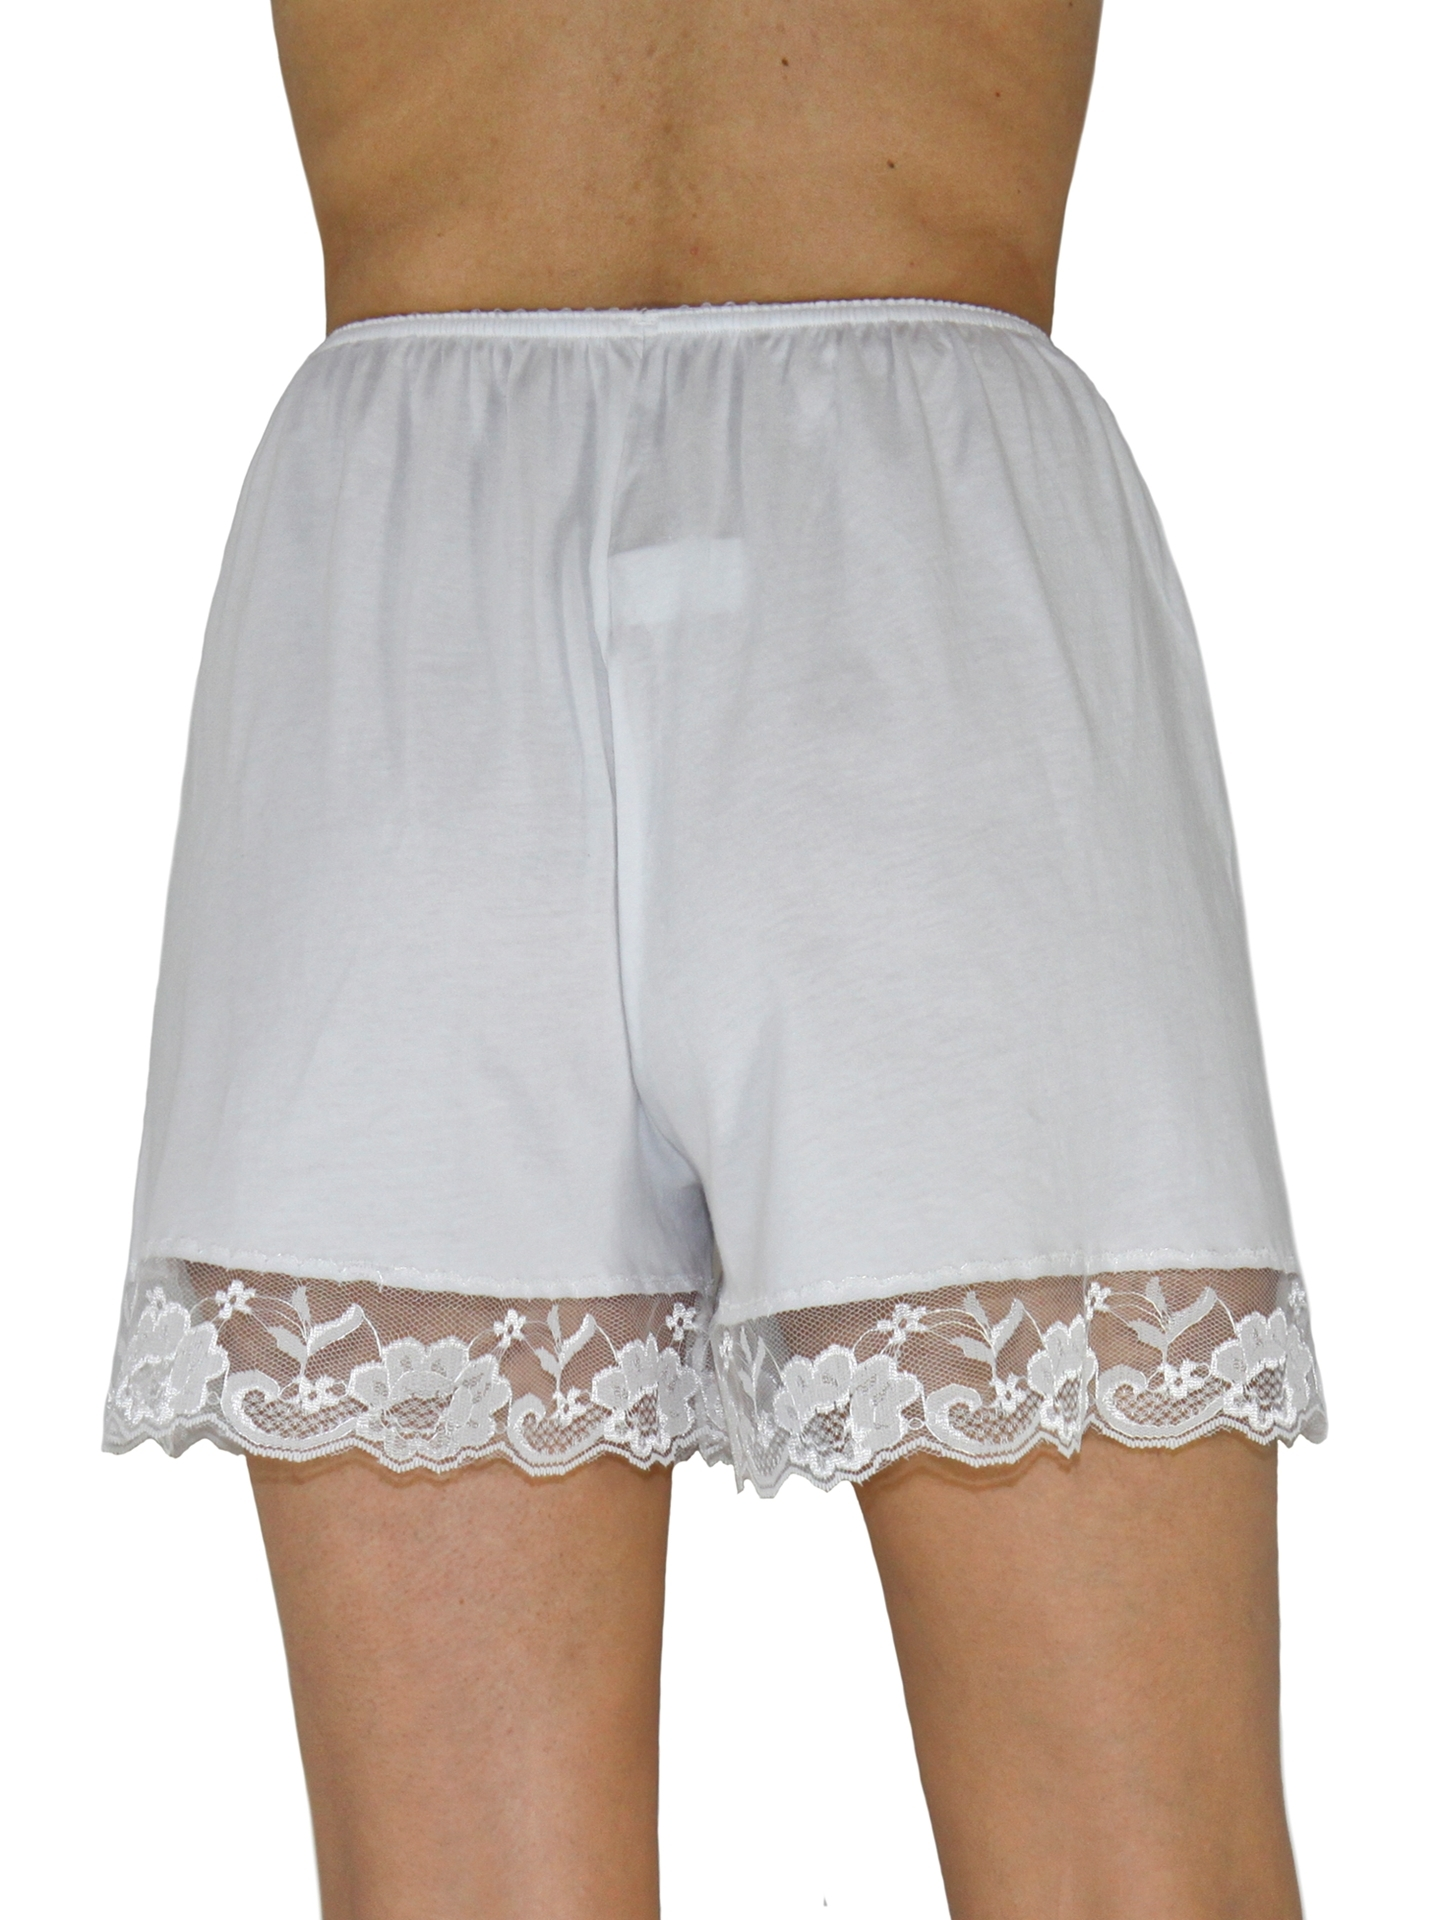 Picture of Pettipants Cotton Knit Culotte Slip Bloomers Split Skirt 4-inch Inseam